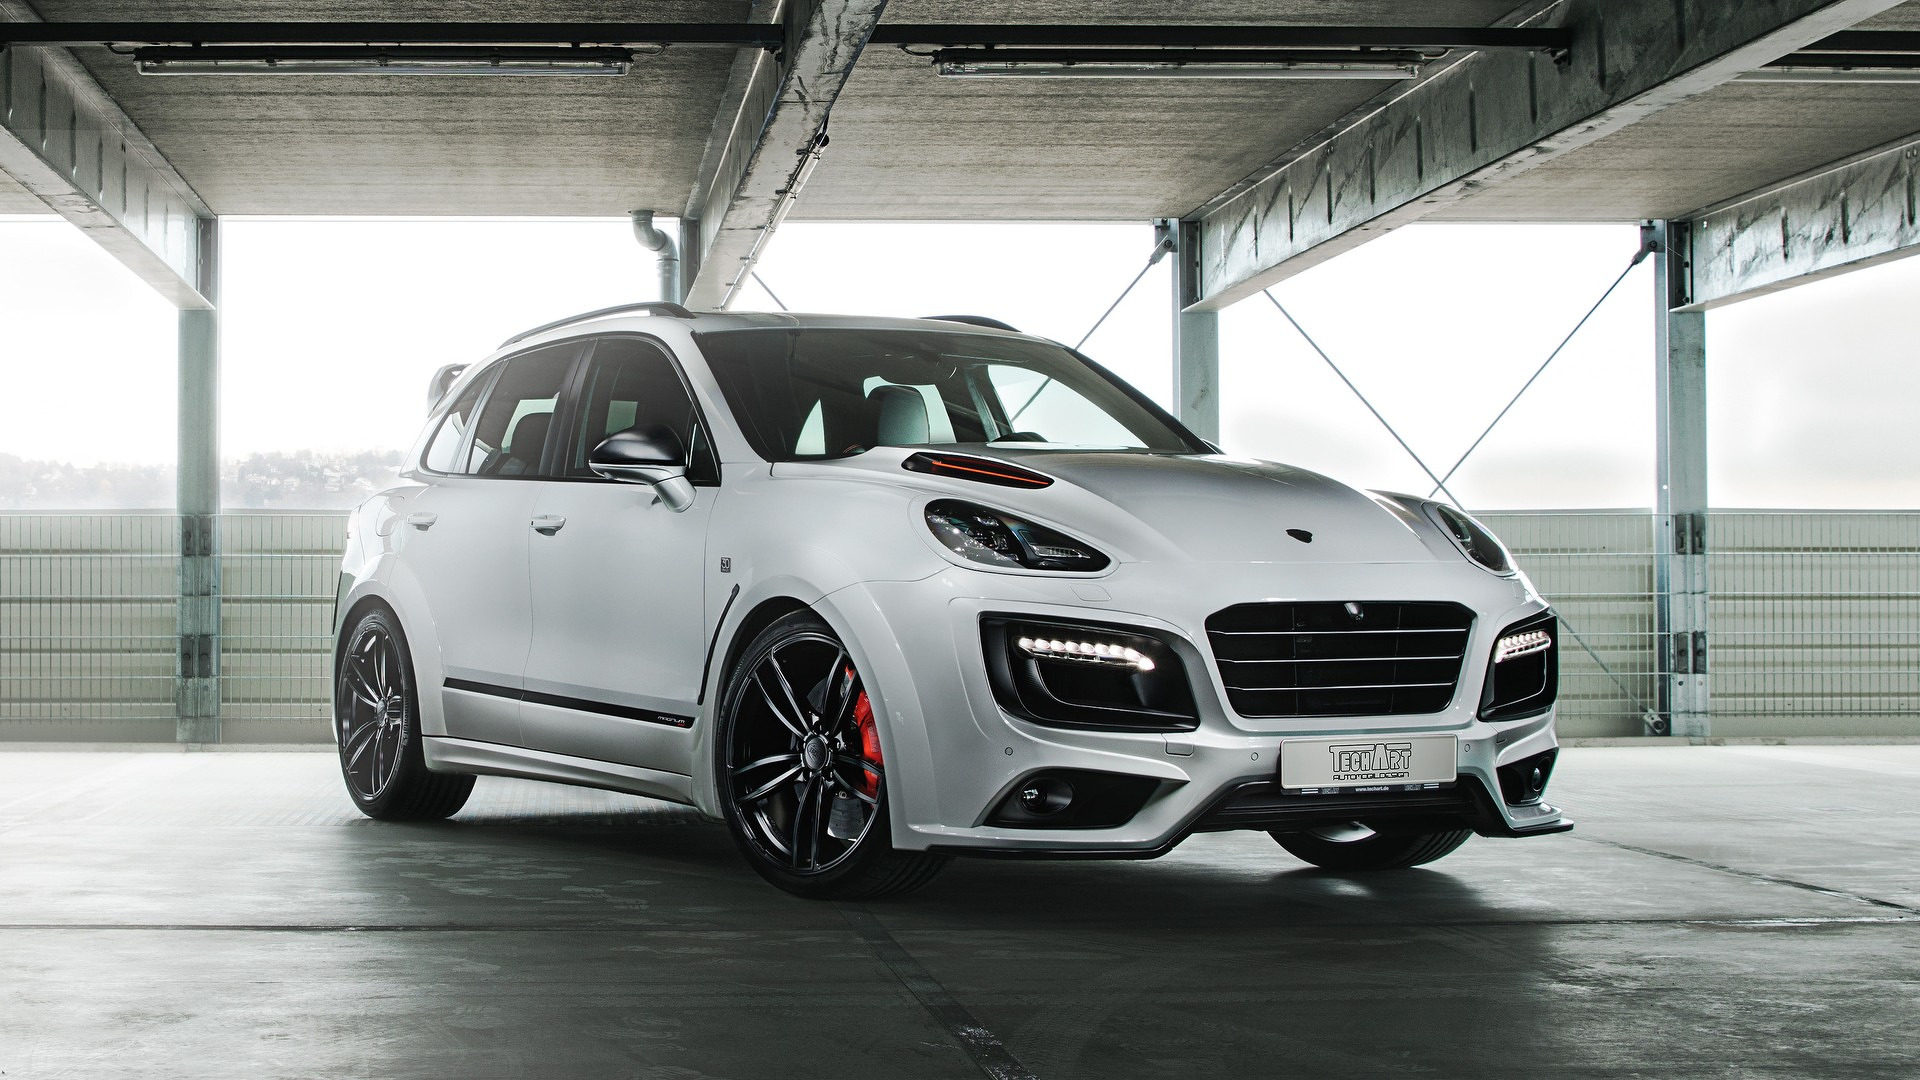 720 Hp Porsche Cayenne Turbo S Marks Techarts 30th Anniversary